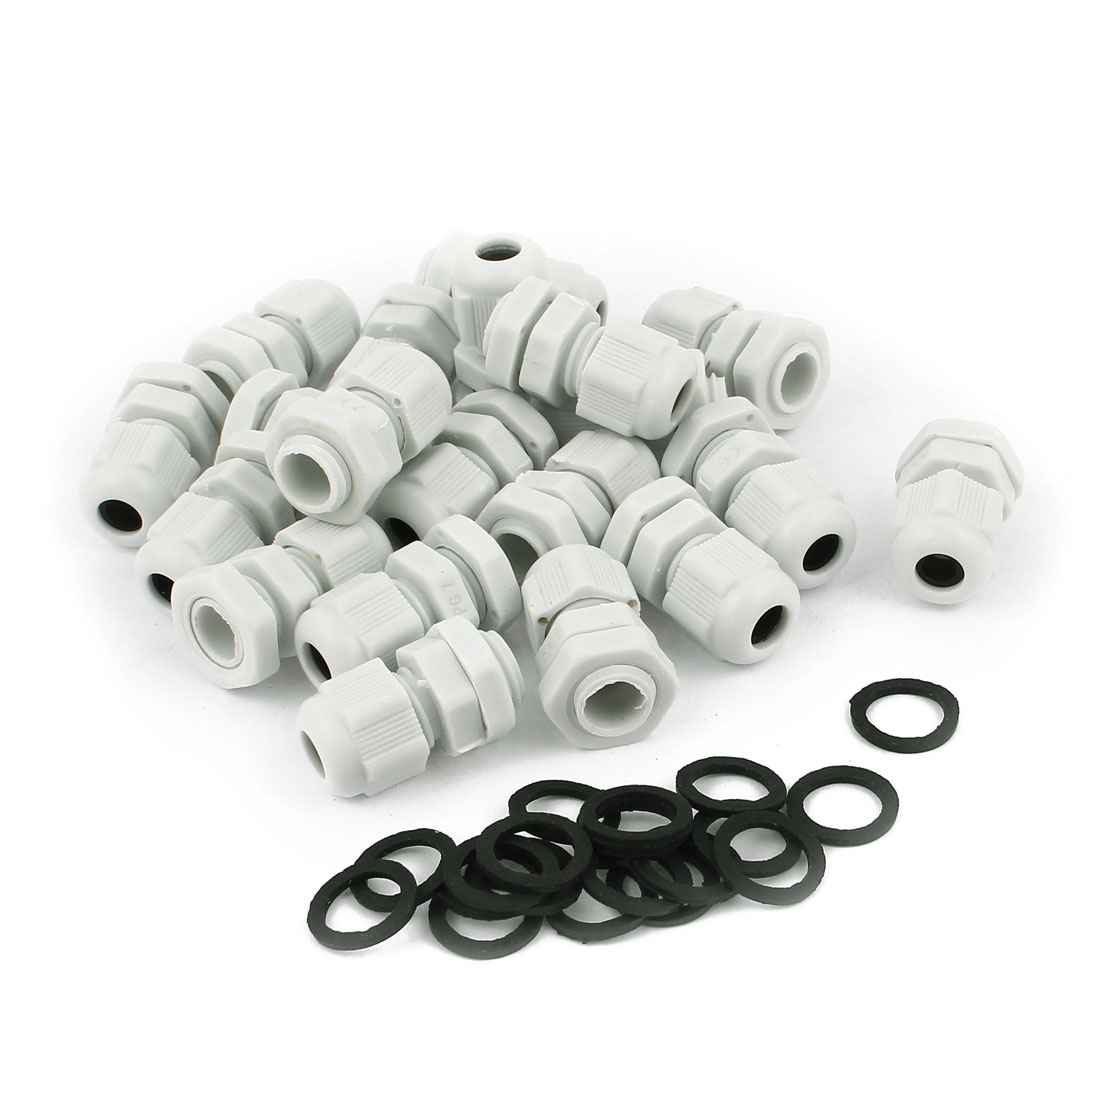 Unique Bargains 20 Pcs Water Resistant PG7 Type 3mm to 6.5mm Cable Gland Connector White